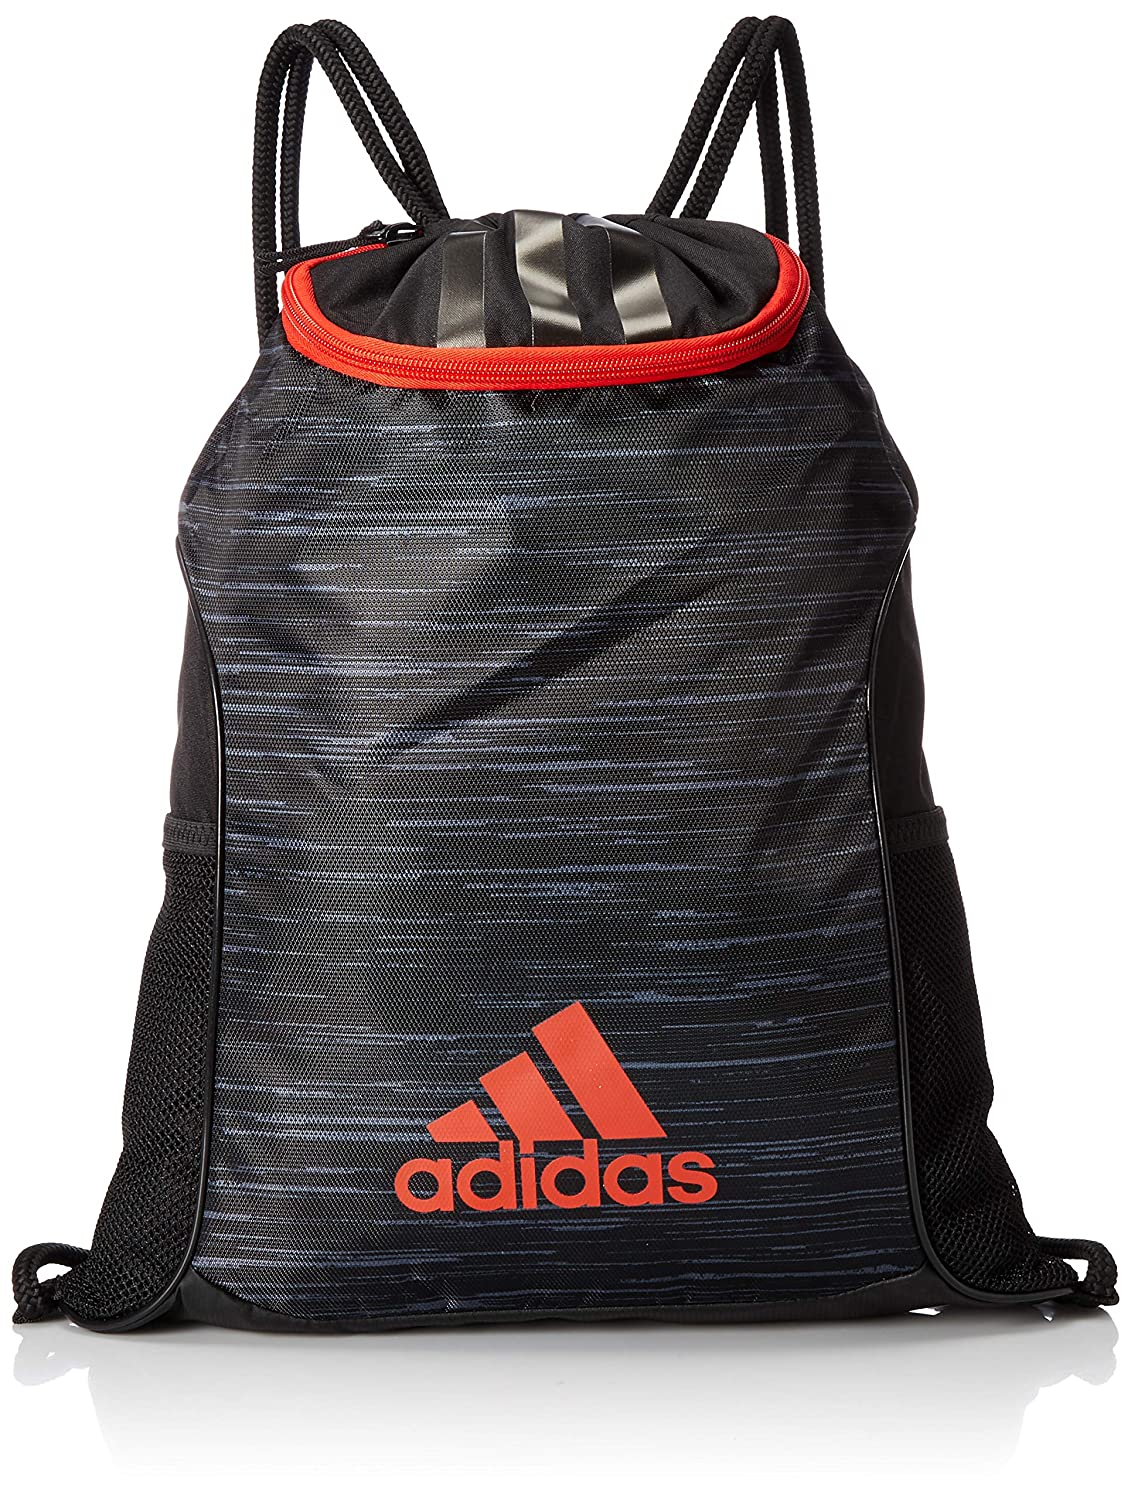 0b46f237e498 Amazon.com  adidas Team Issue II Sackpack